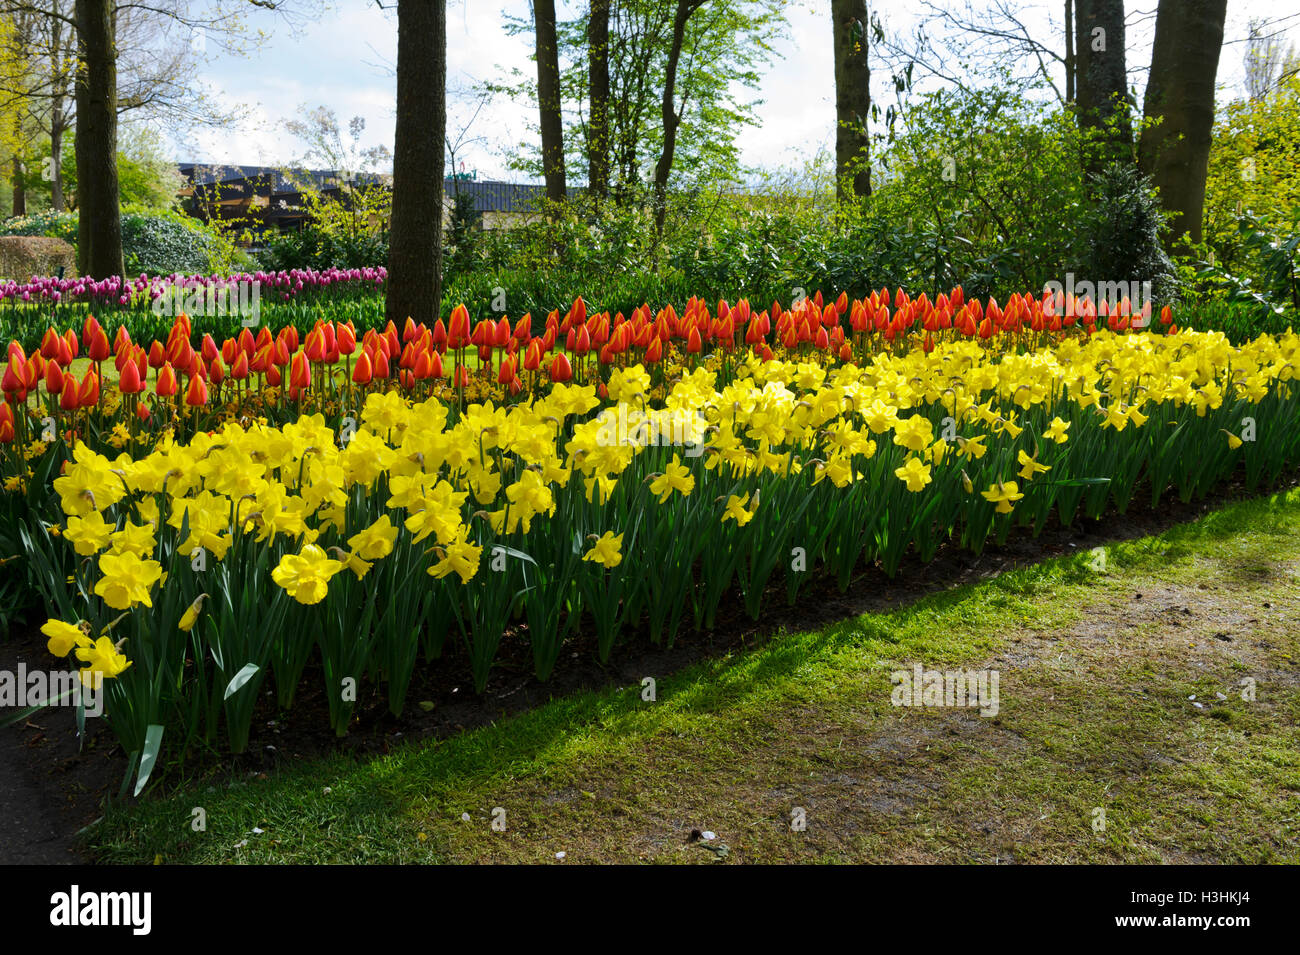 Rows Of Tulips And Daffodils In The Keukenhof Gardens In Amsterdam,  Holland, Netherlands